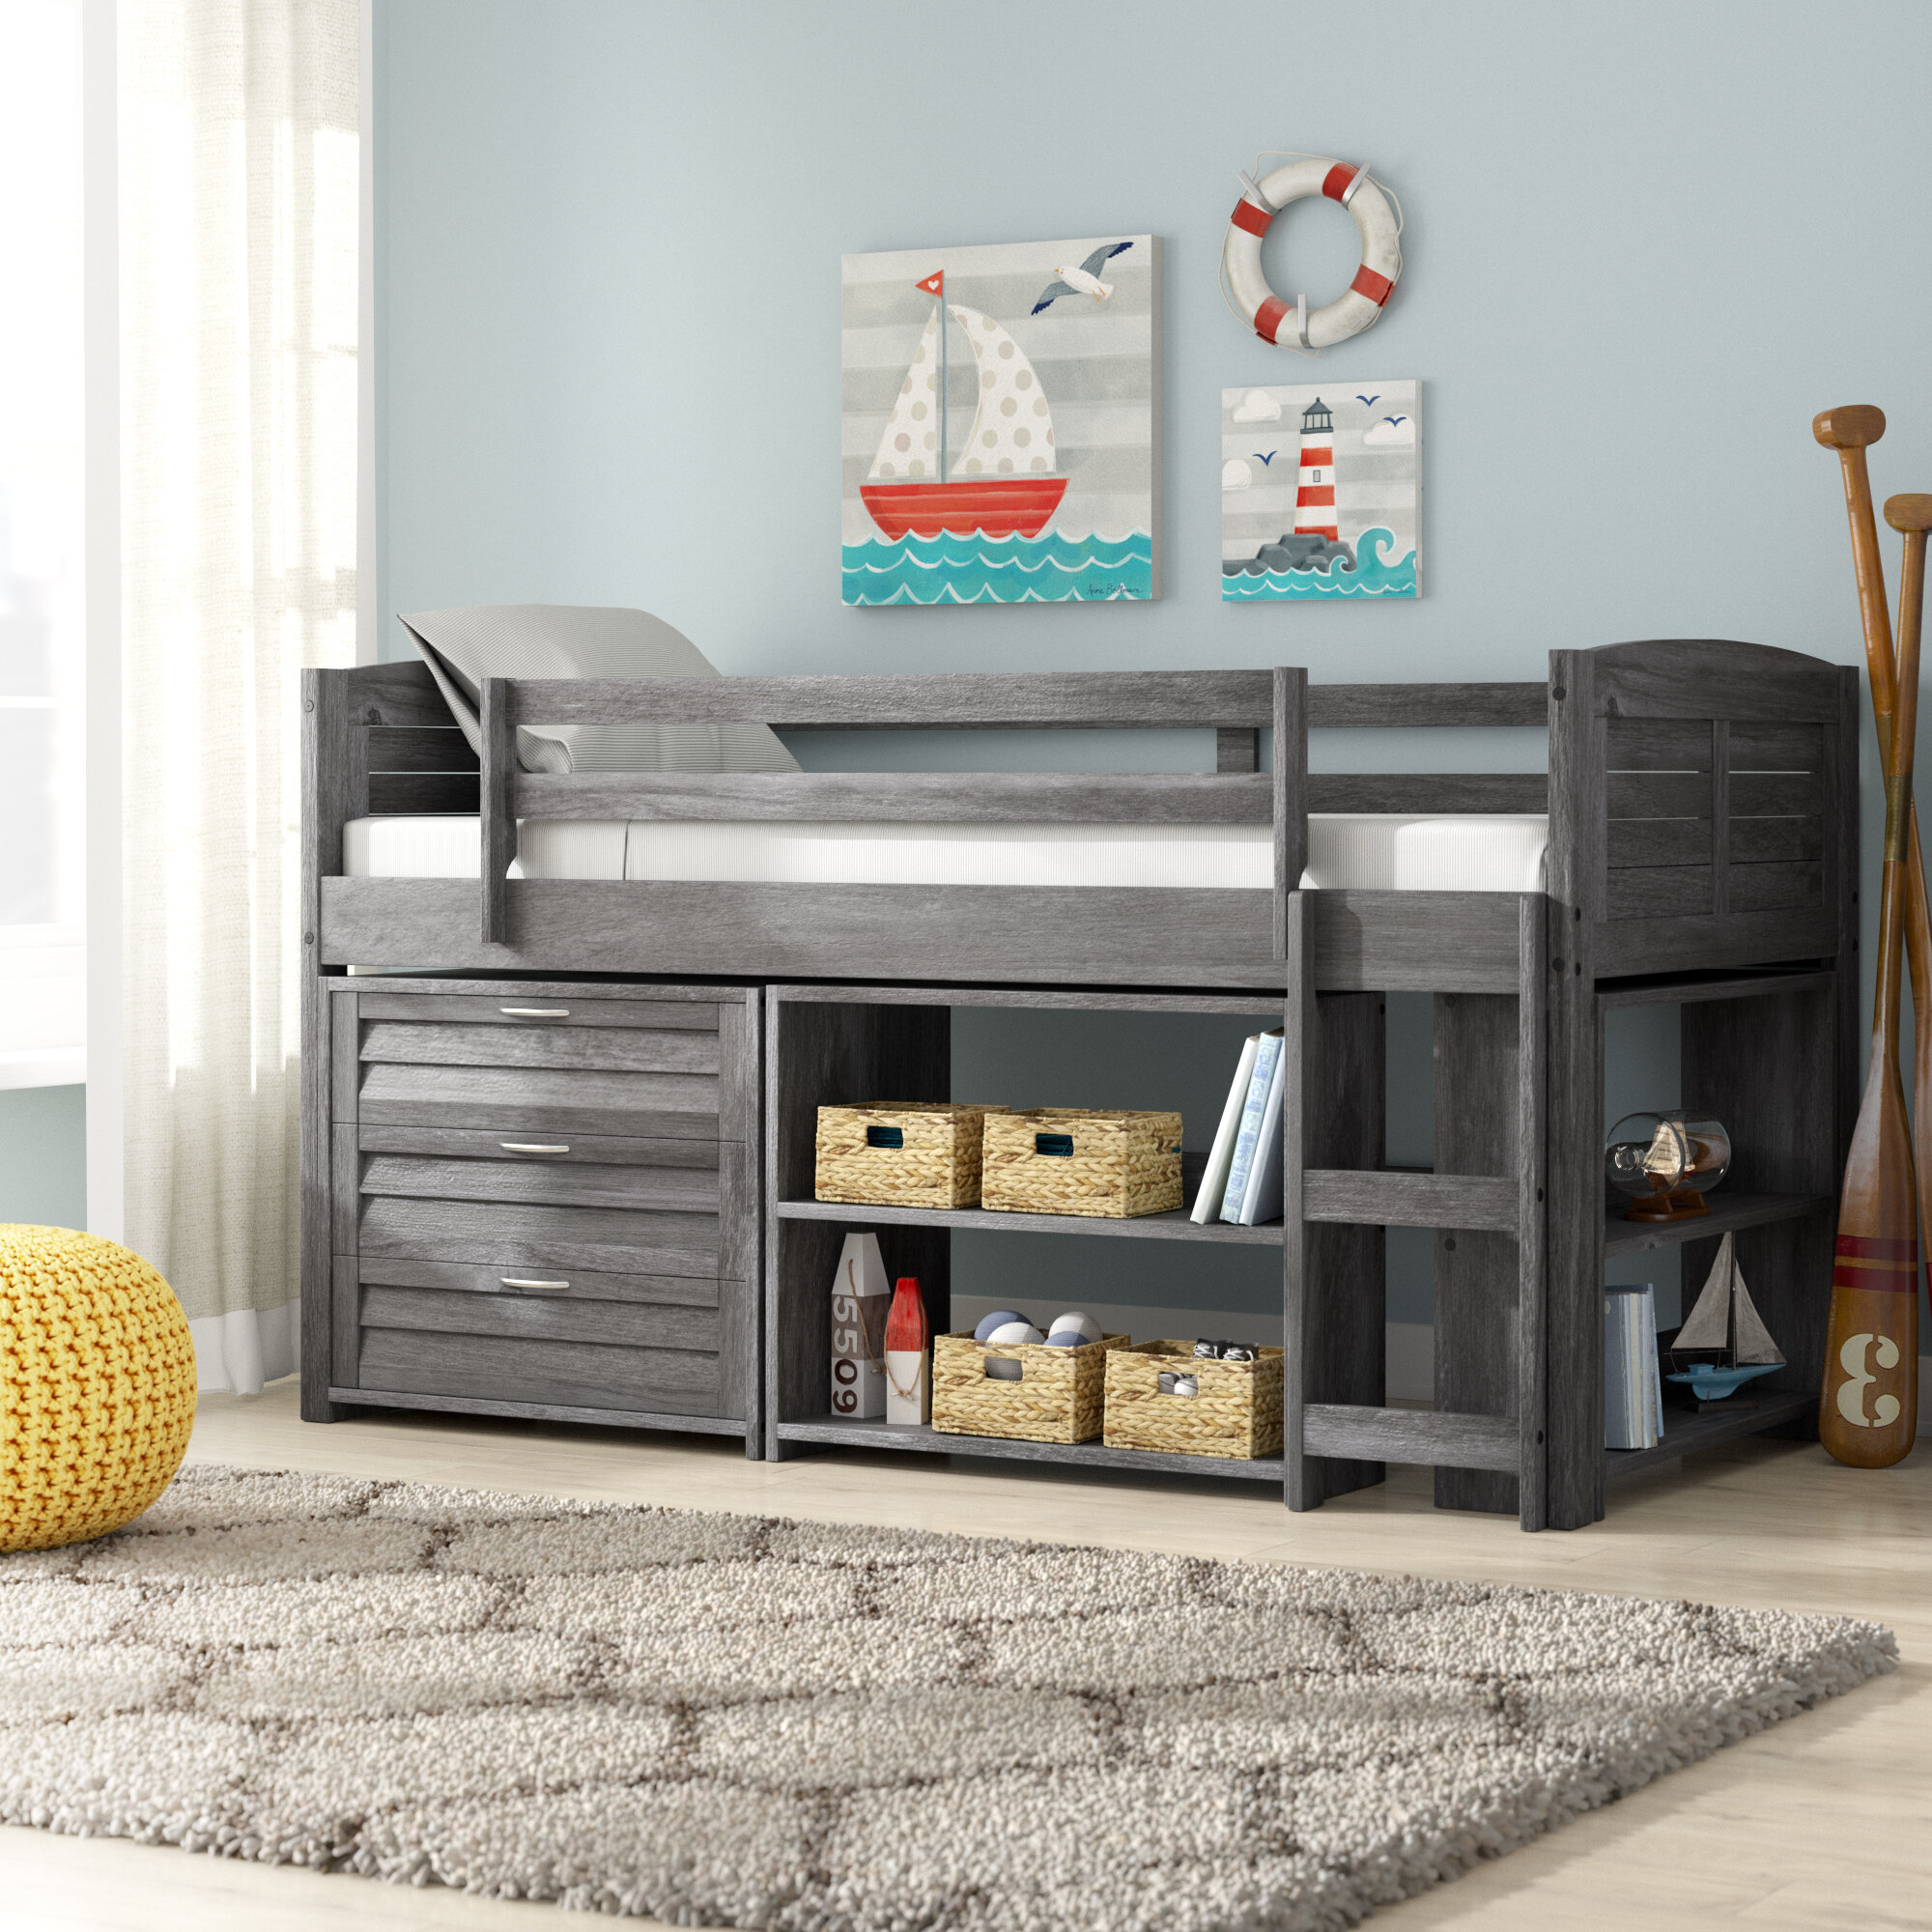 Harriet Bee Evan Modern Twin Low Loft Bed With Storage